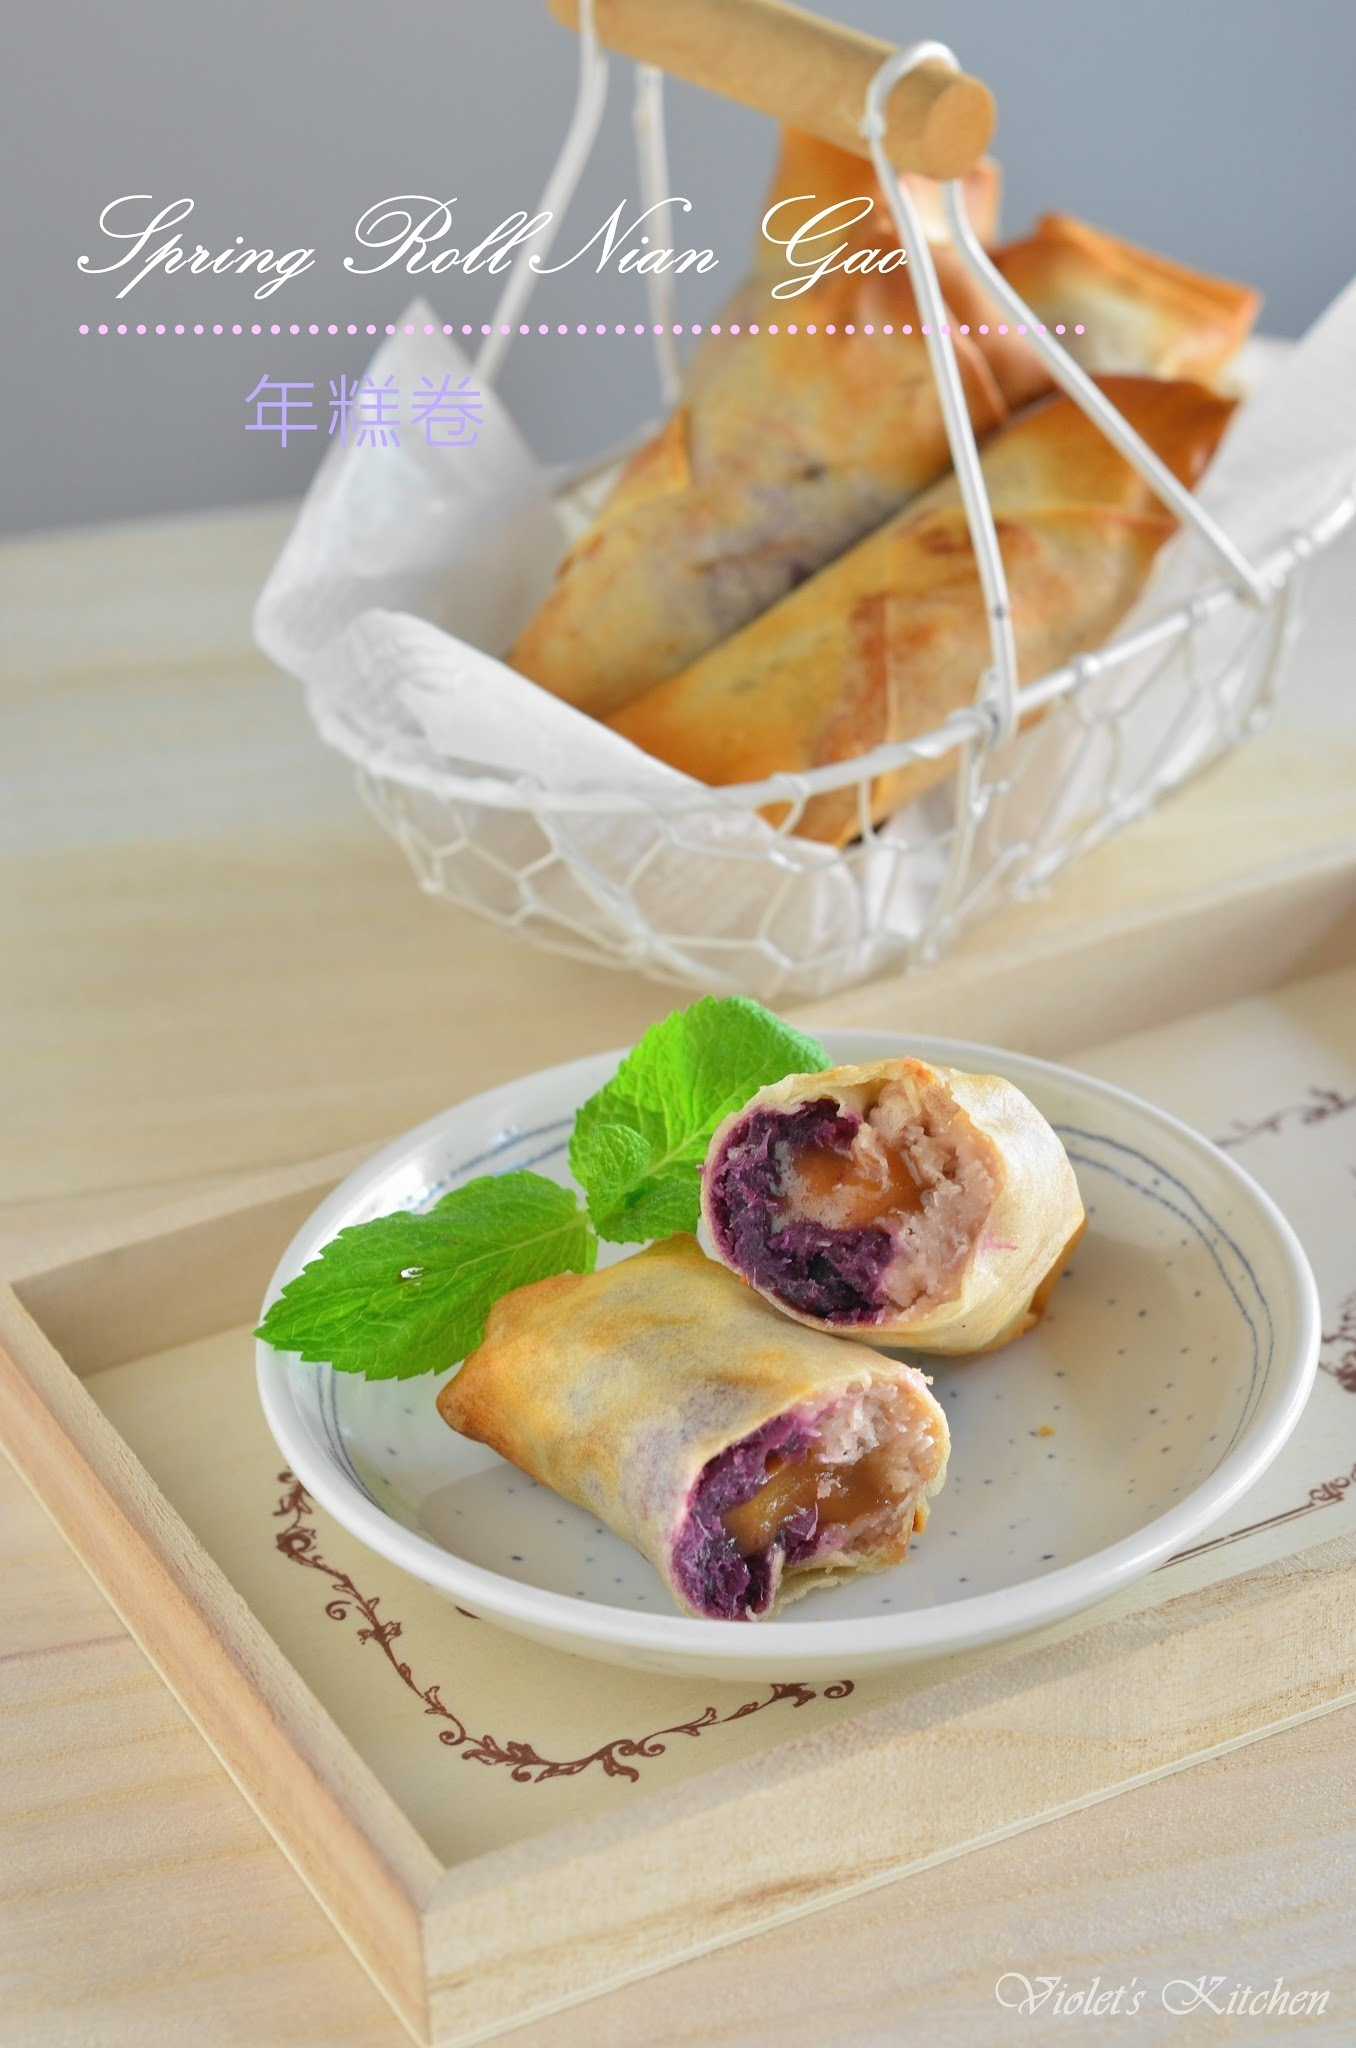 年糕卷 Spring Roll Nian Gao (空气炸锅版 / Air Fryer Version)